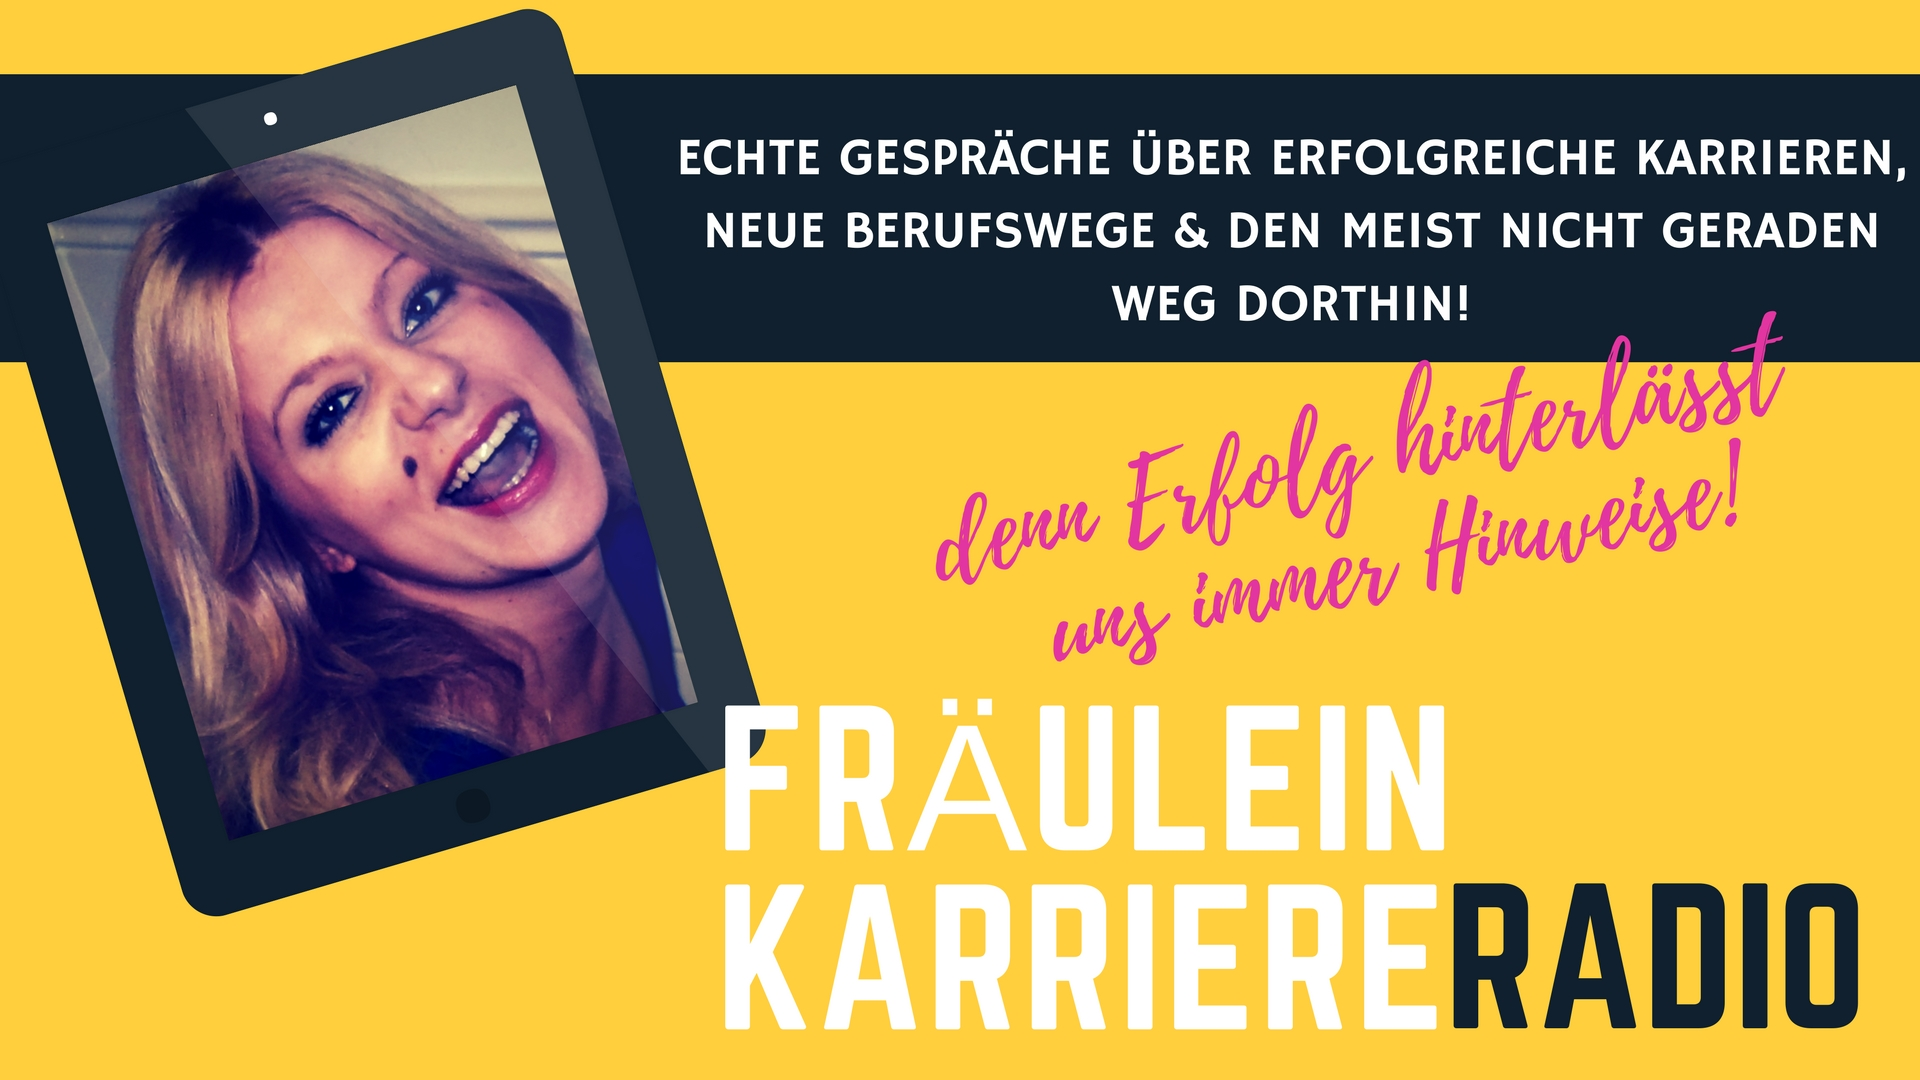 Fraulein Karriere Radio #podcast - The podcast that shows you how to use your untapped career potential!